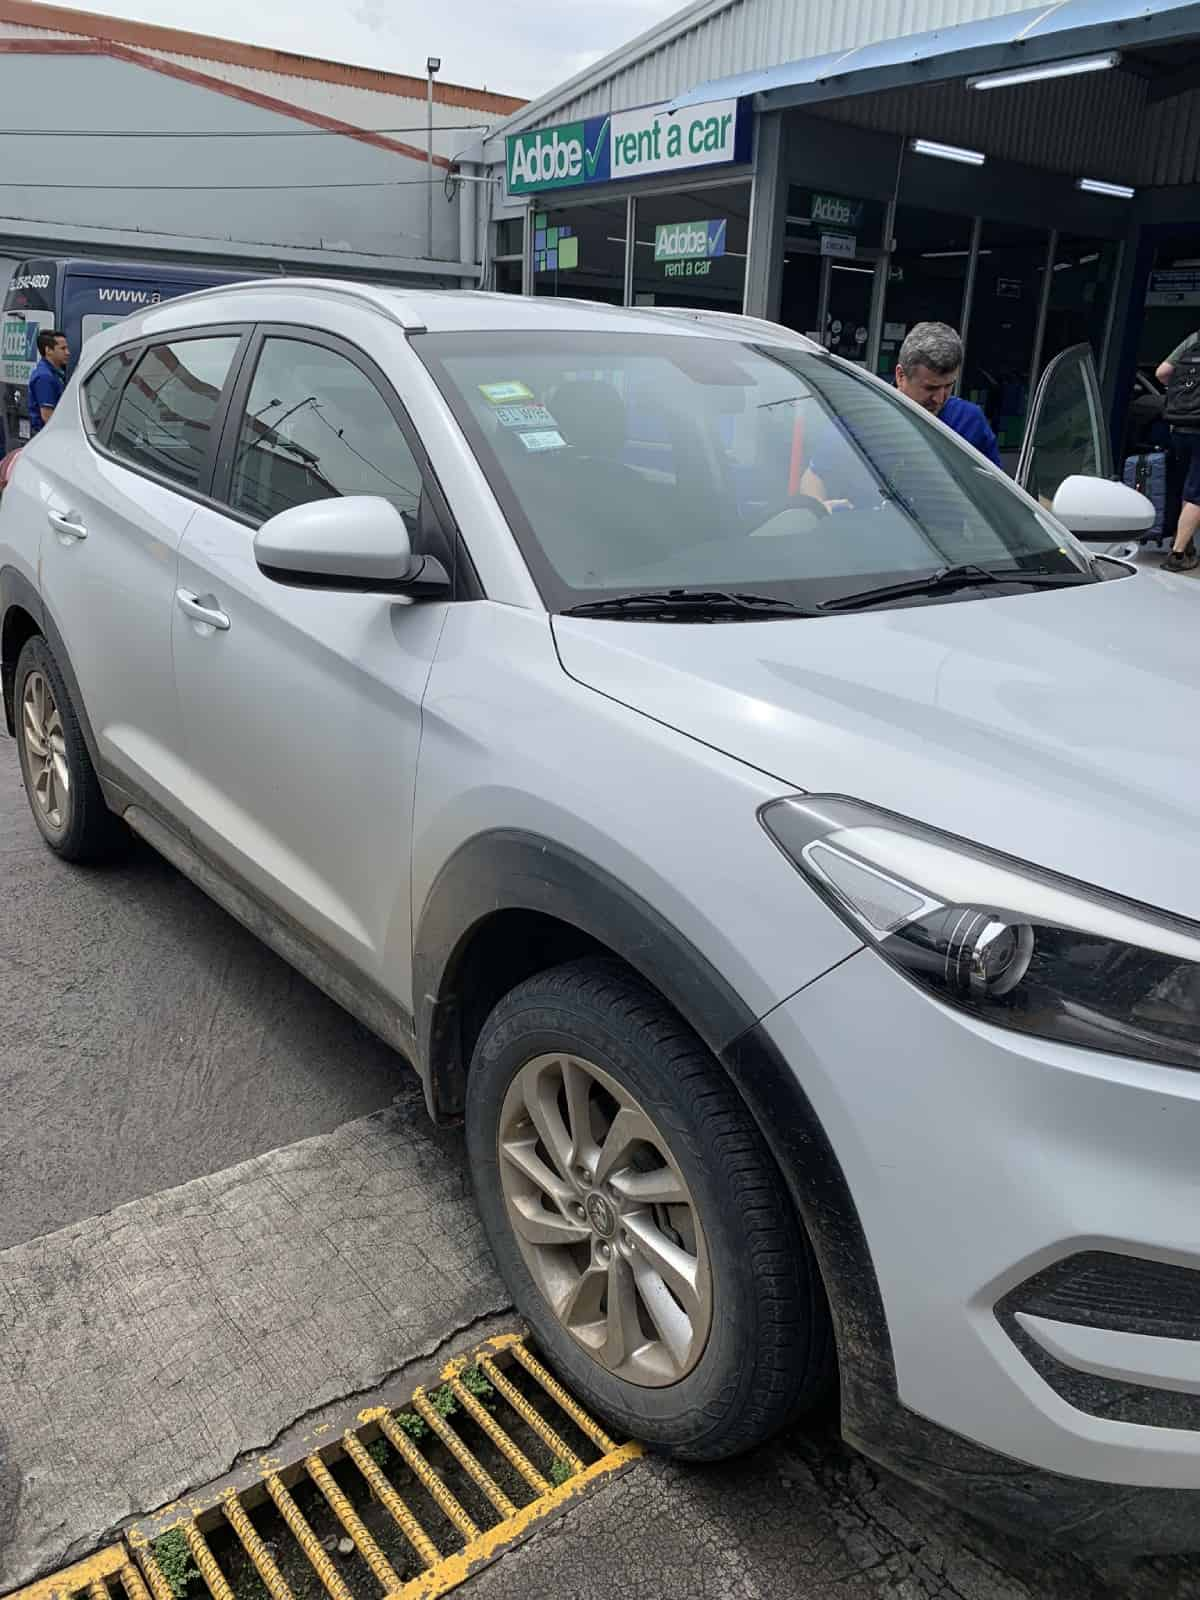 Review of Adobe Rent-A-Car, & What to Expect Renting a Car & Driving | A review of my experience with Adobe Rental Car in Costa Rica. Details about what it's like driving in Costa Rica, about the rental car insurance nuances, and more. #costarica #carrental